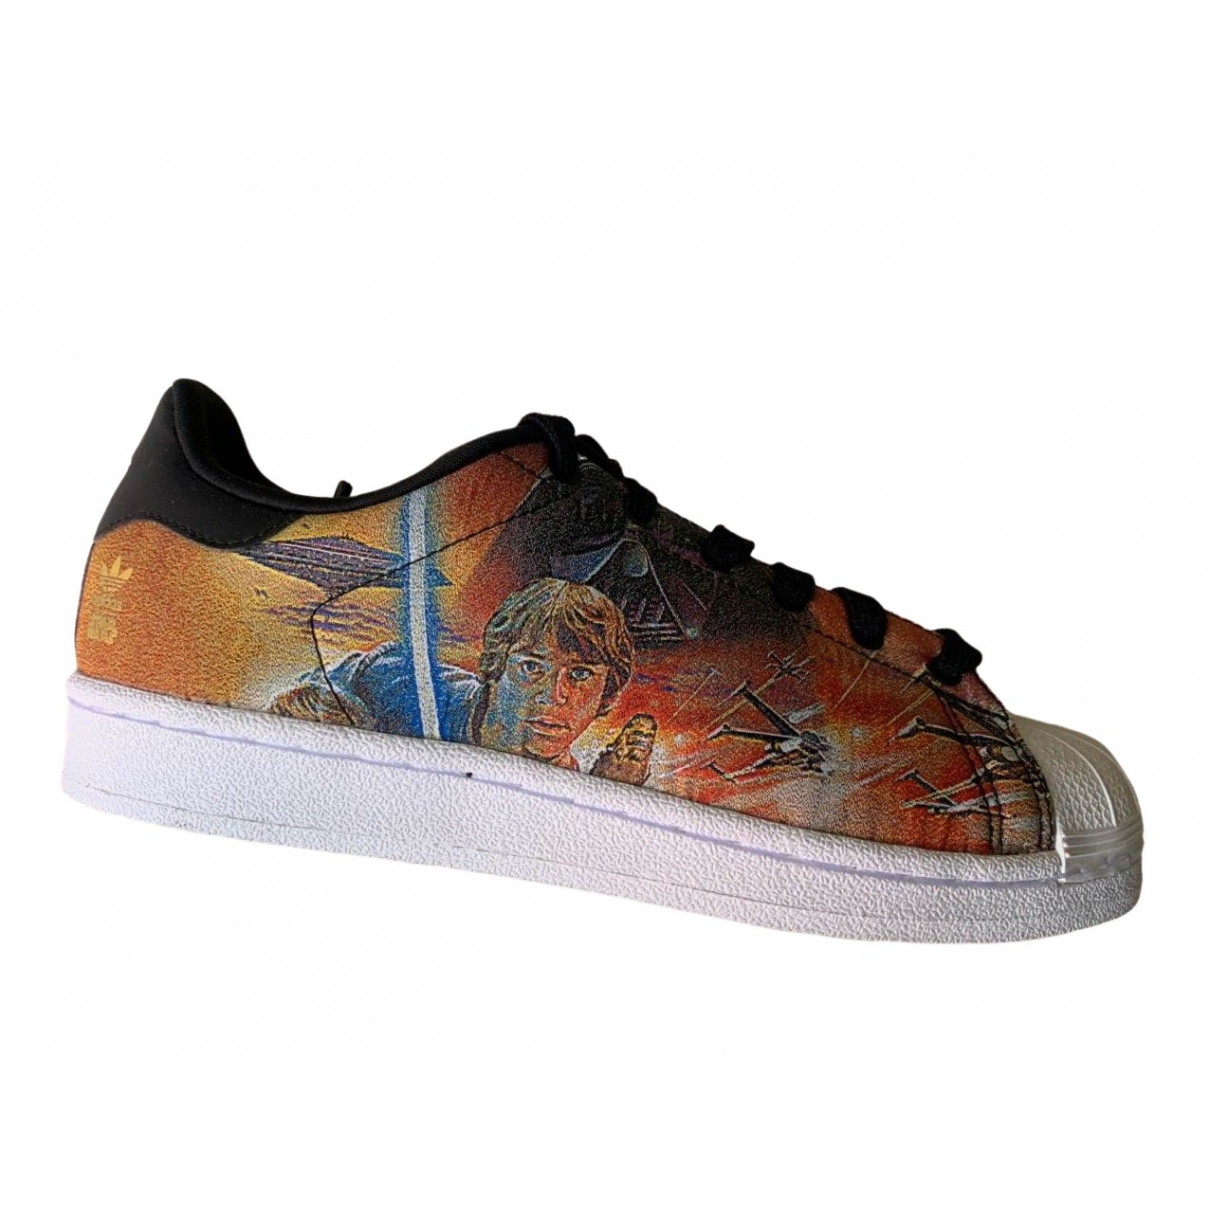 Adidas Superstar Orange Leather Trainers for Women 5 UK